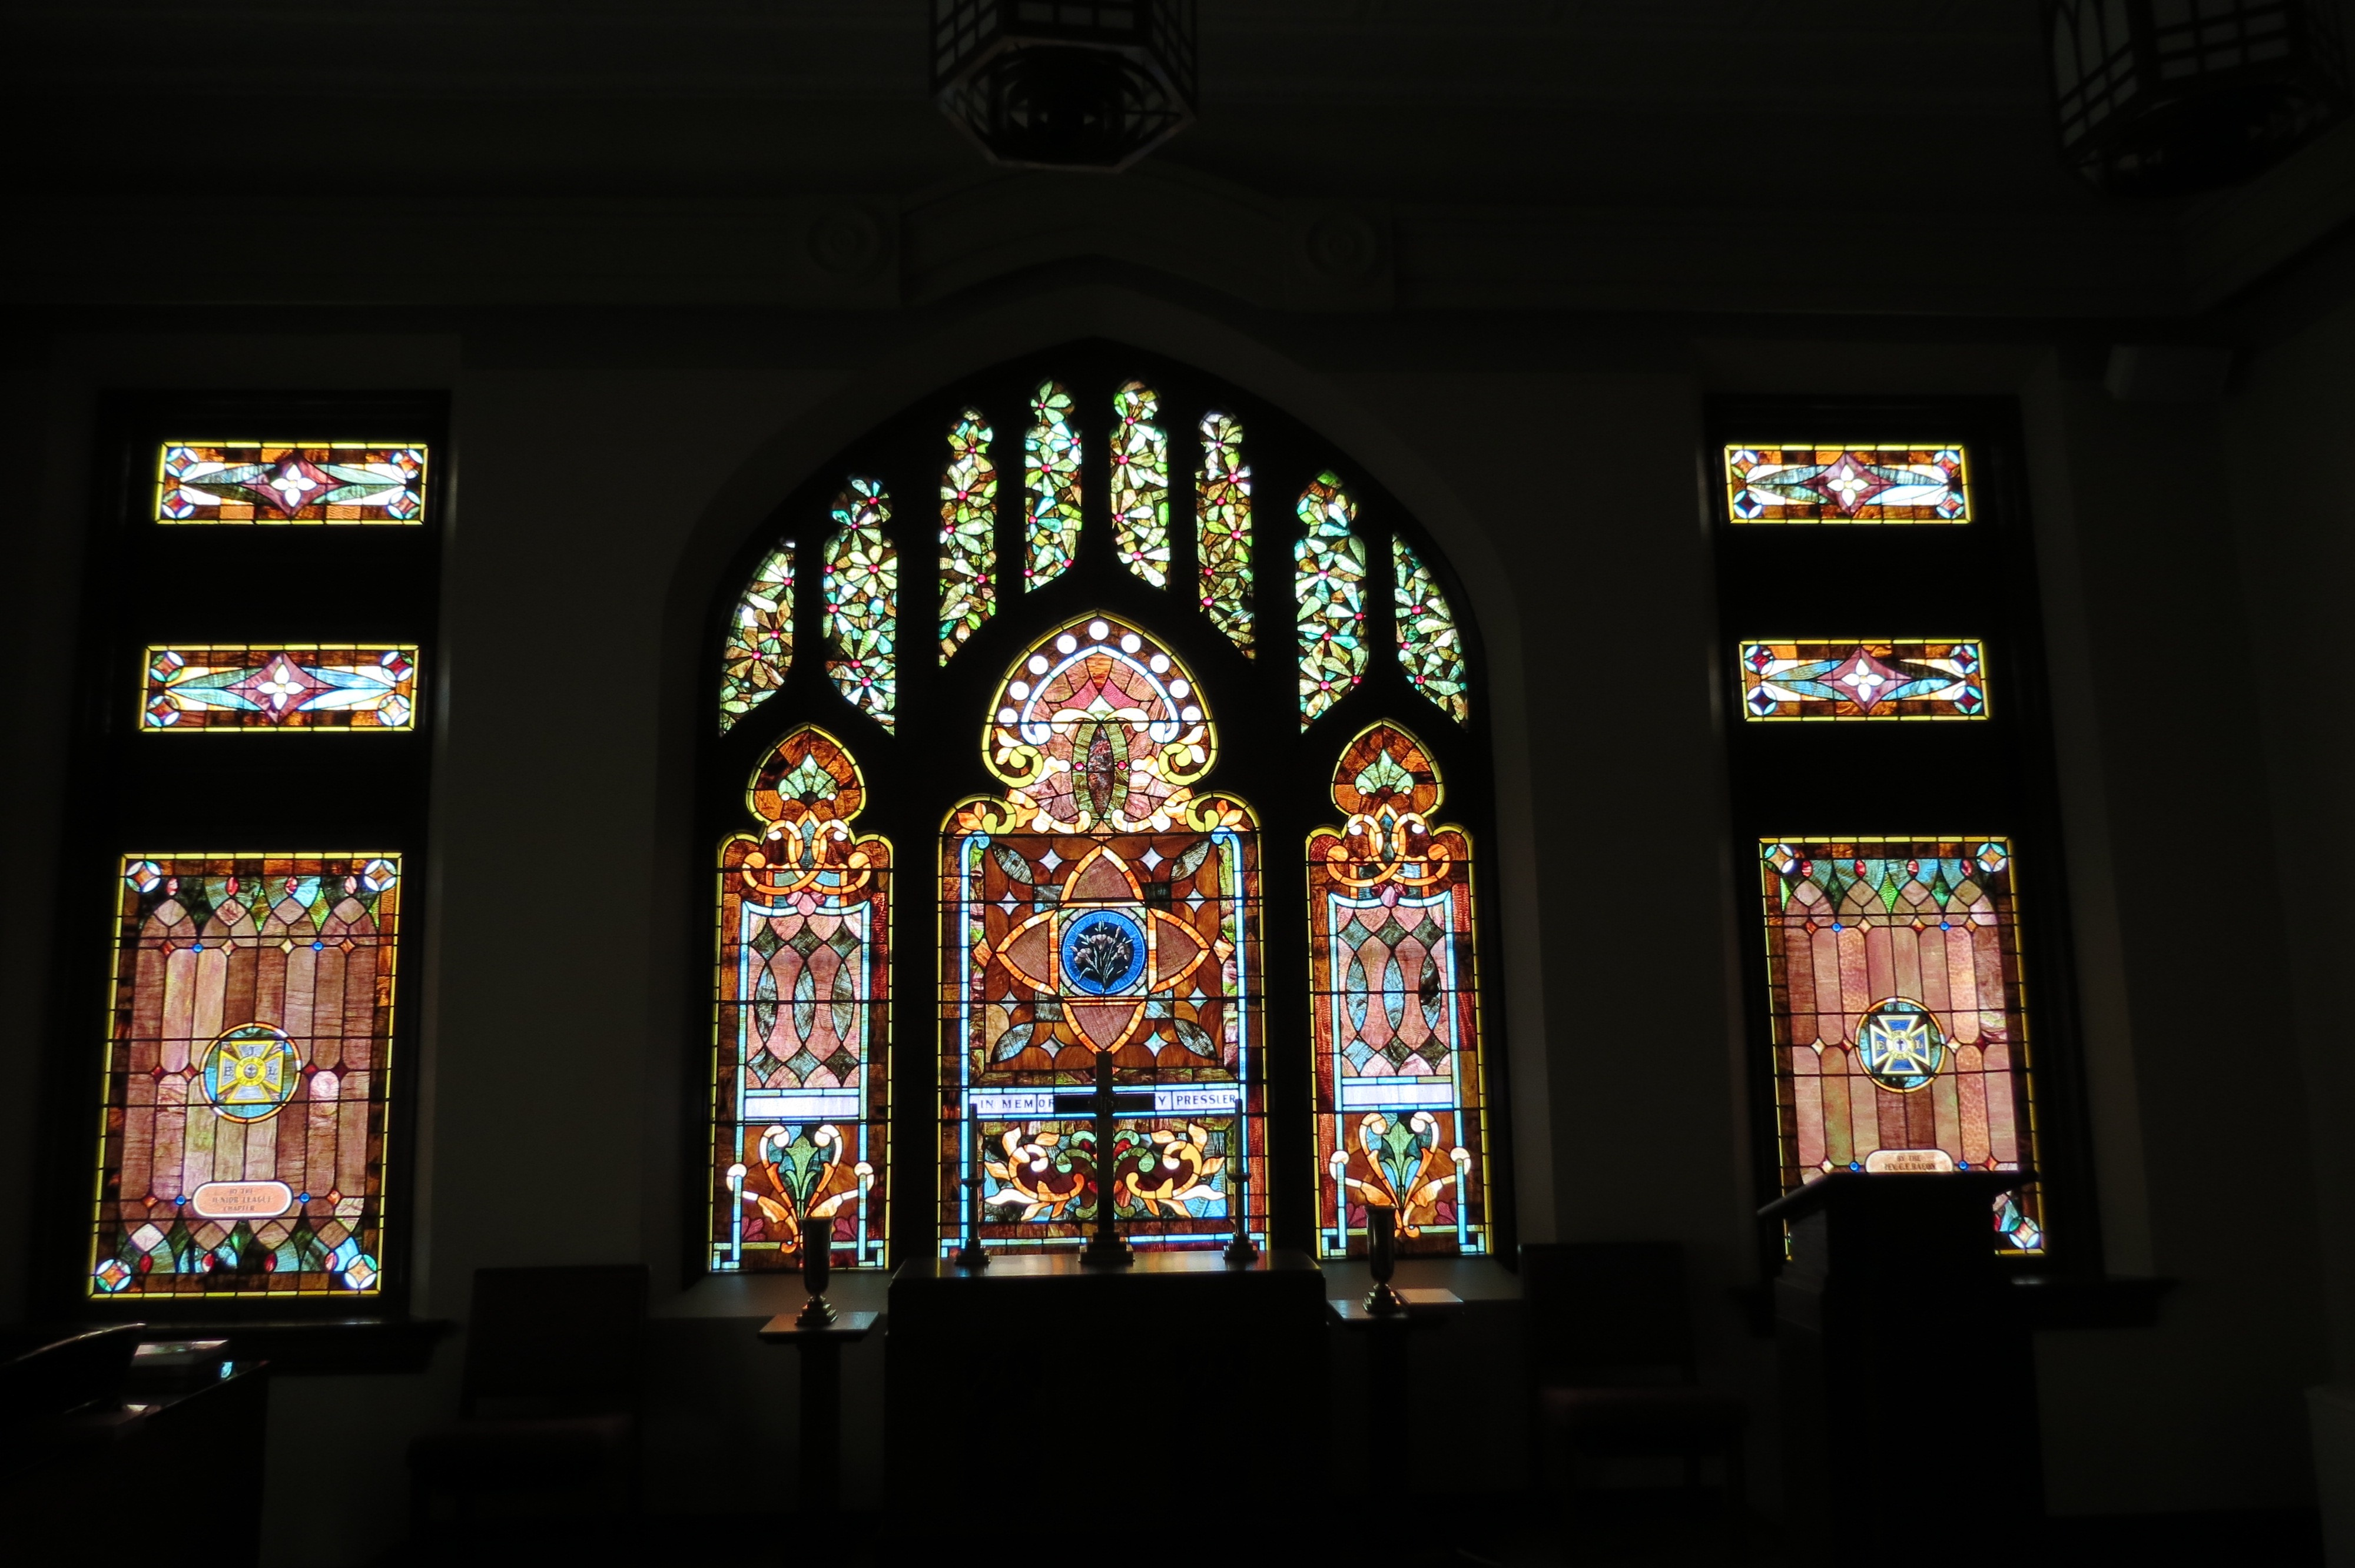 church stained glass restoration & repair mccully art glass & restorations lafayette indiana